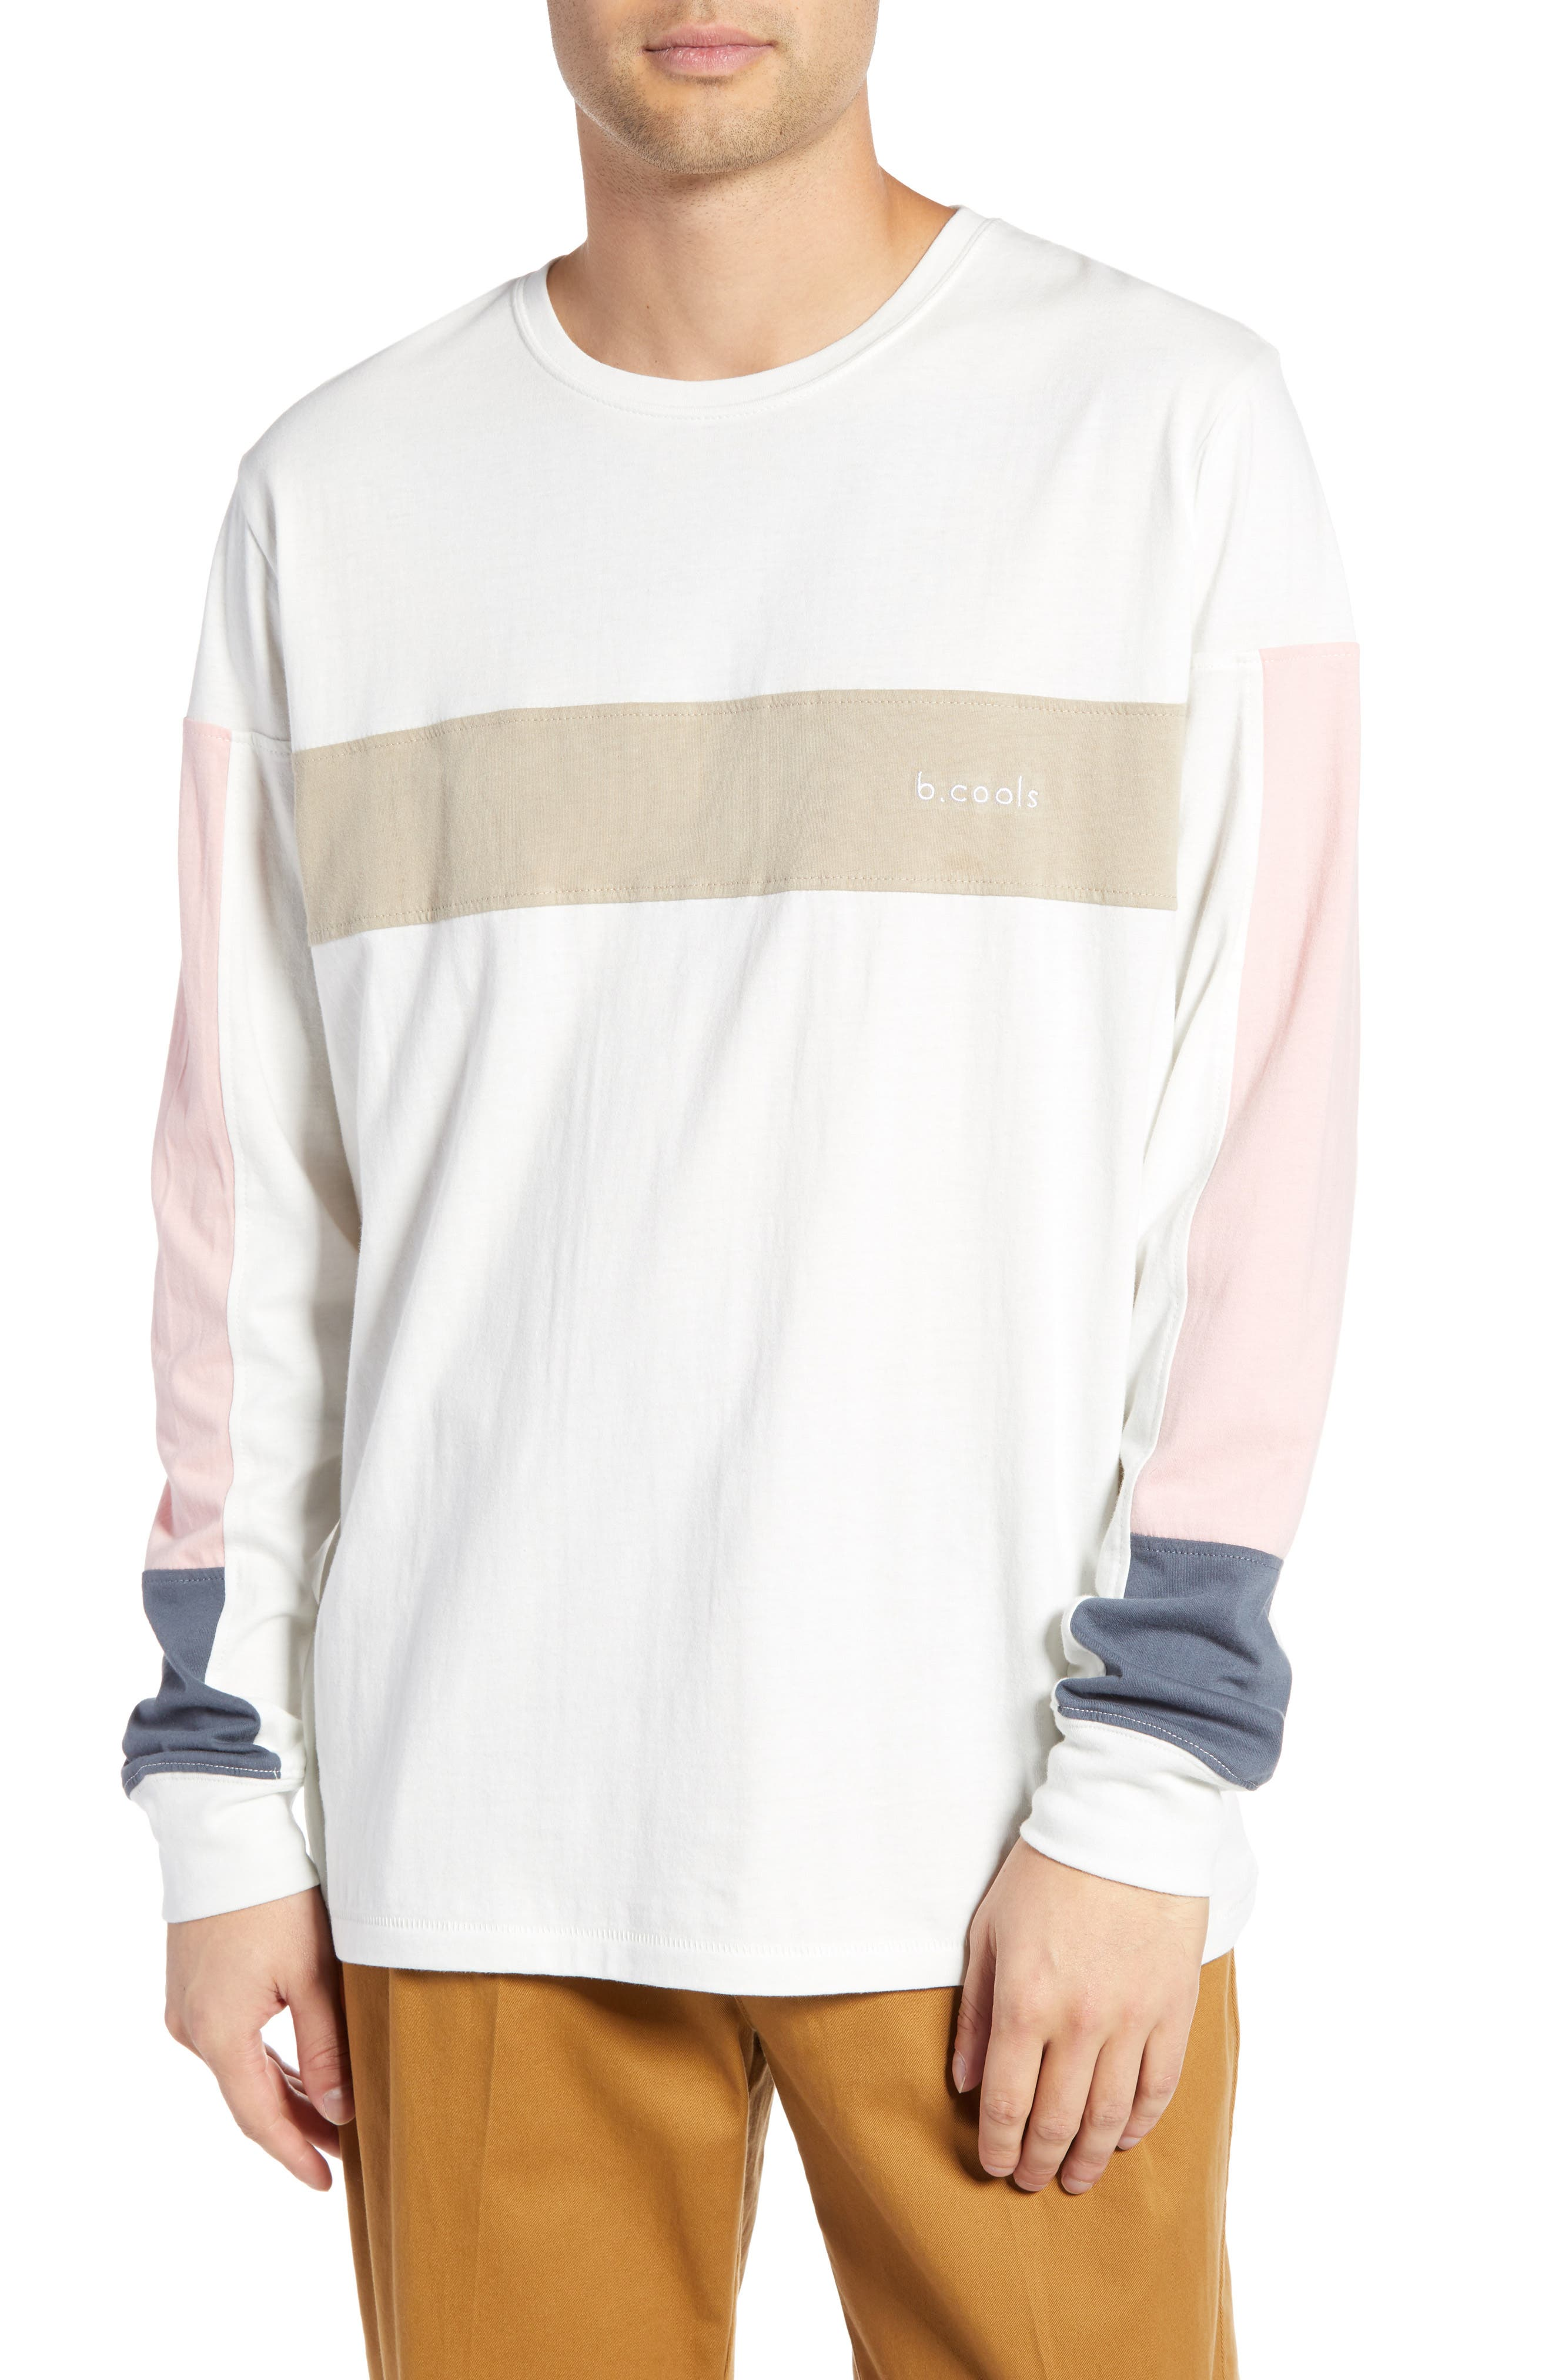 BARNEY COOLS B.Quick Colorblock Long Sleeve T-Shirt in Bone